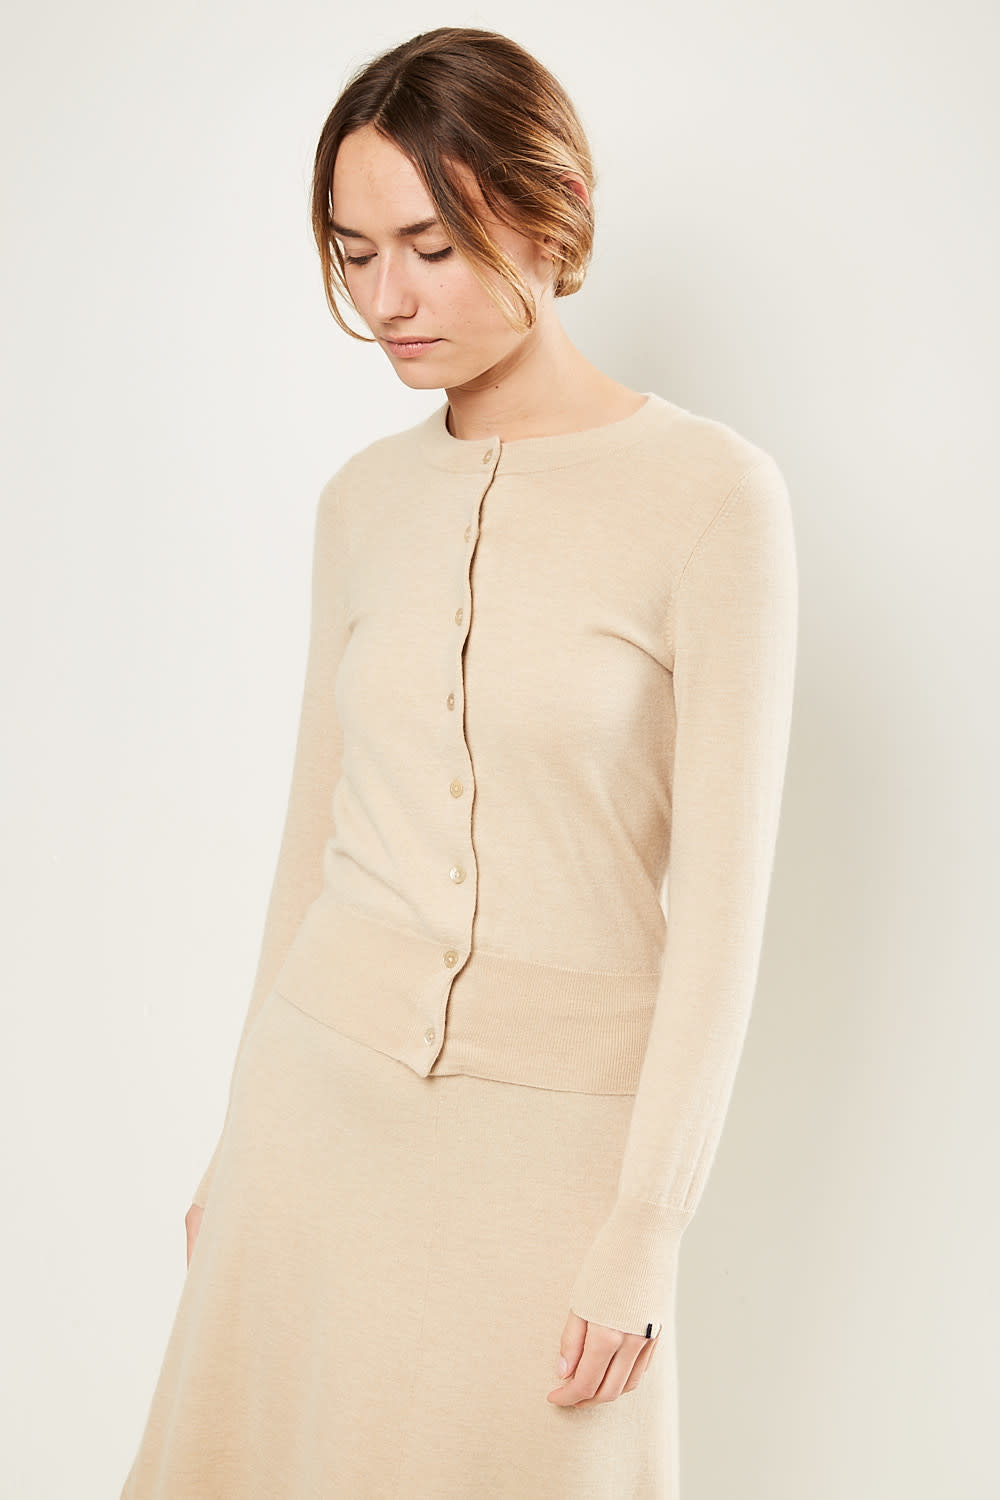 extreme cashmere - No99 little cardigan beige